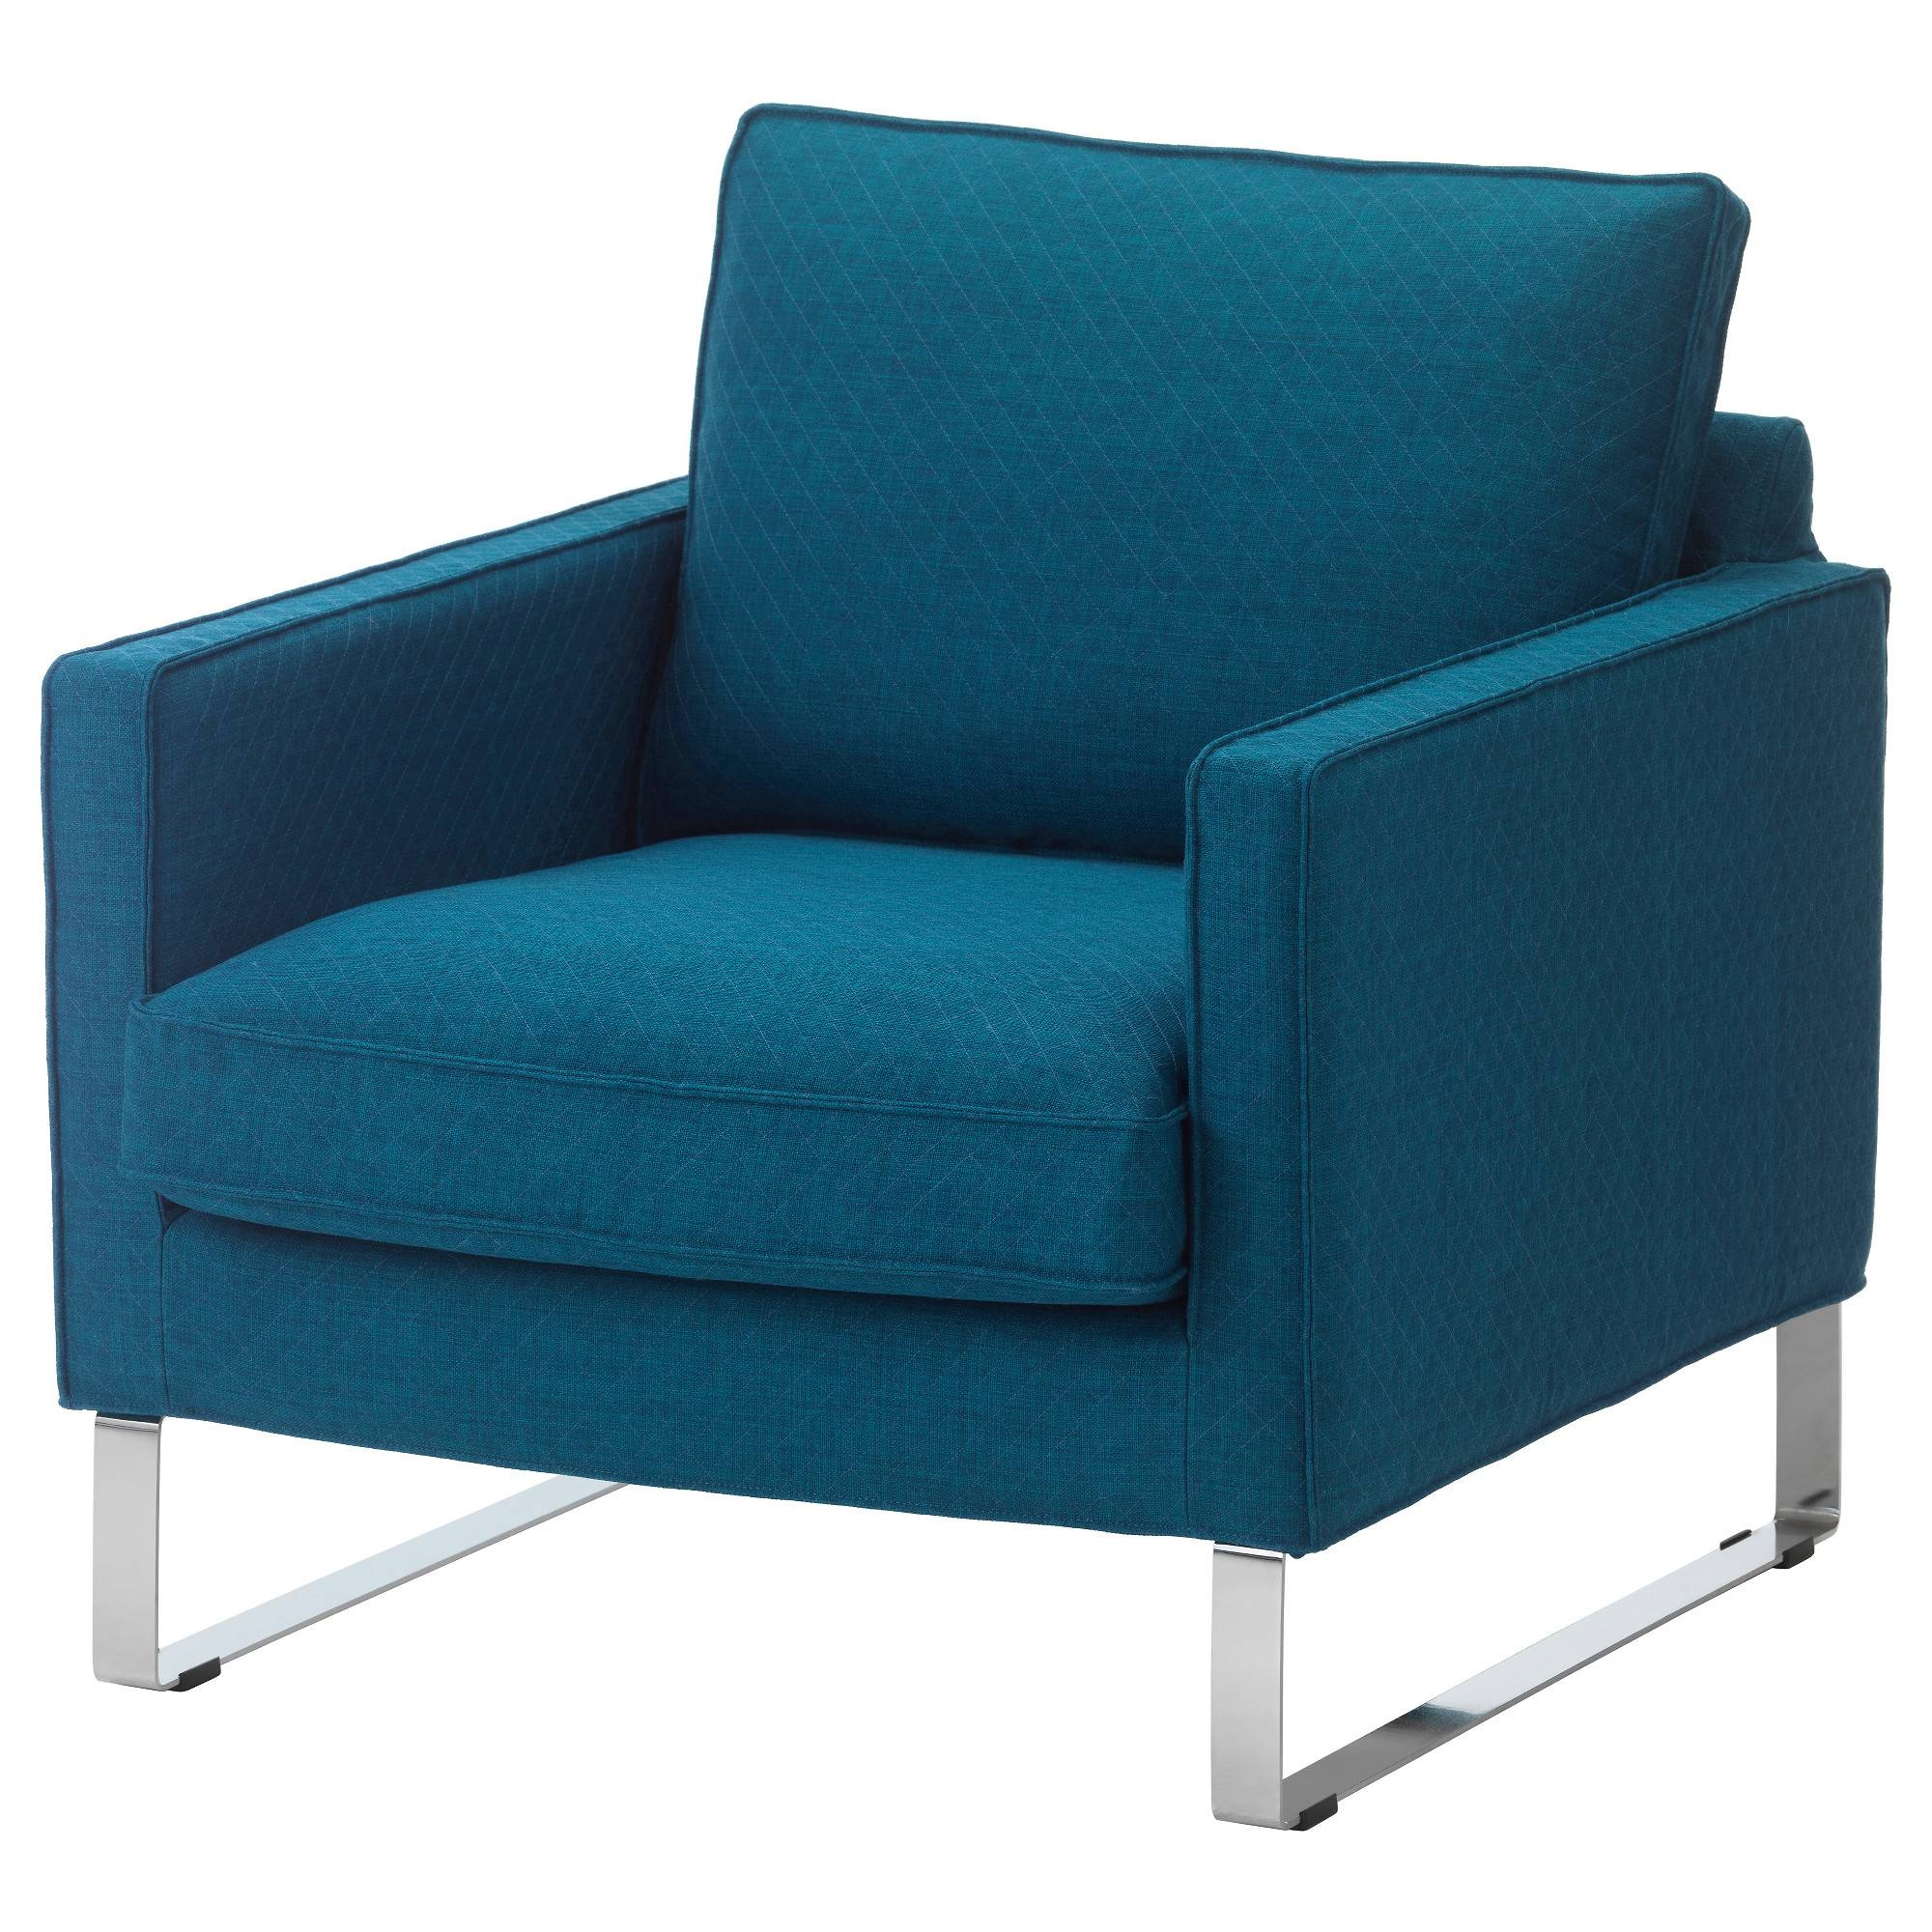 Armchairs - Traditional & Modern - Ikea for Spinning Sofa Chairs (Image 1 of 30)